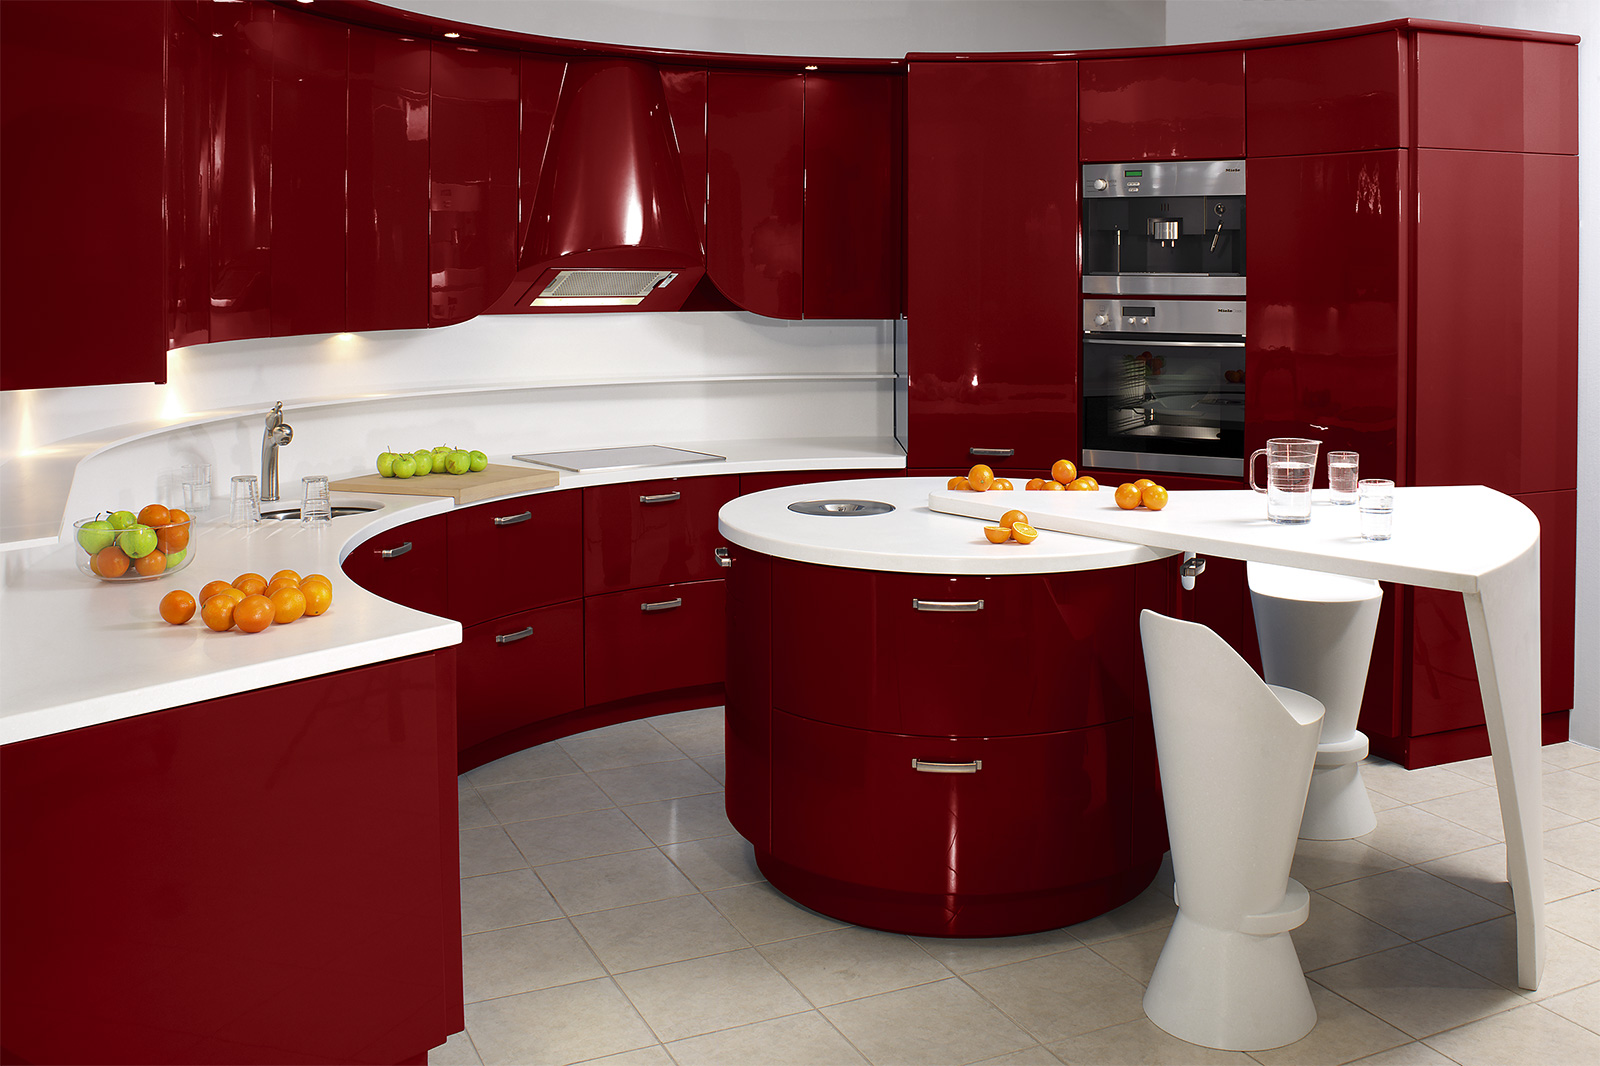 refined-curve-red-cabinet-using-winning-countertop-for-kitchen-decor